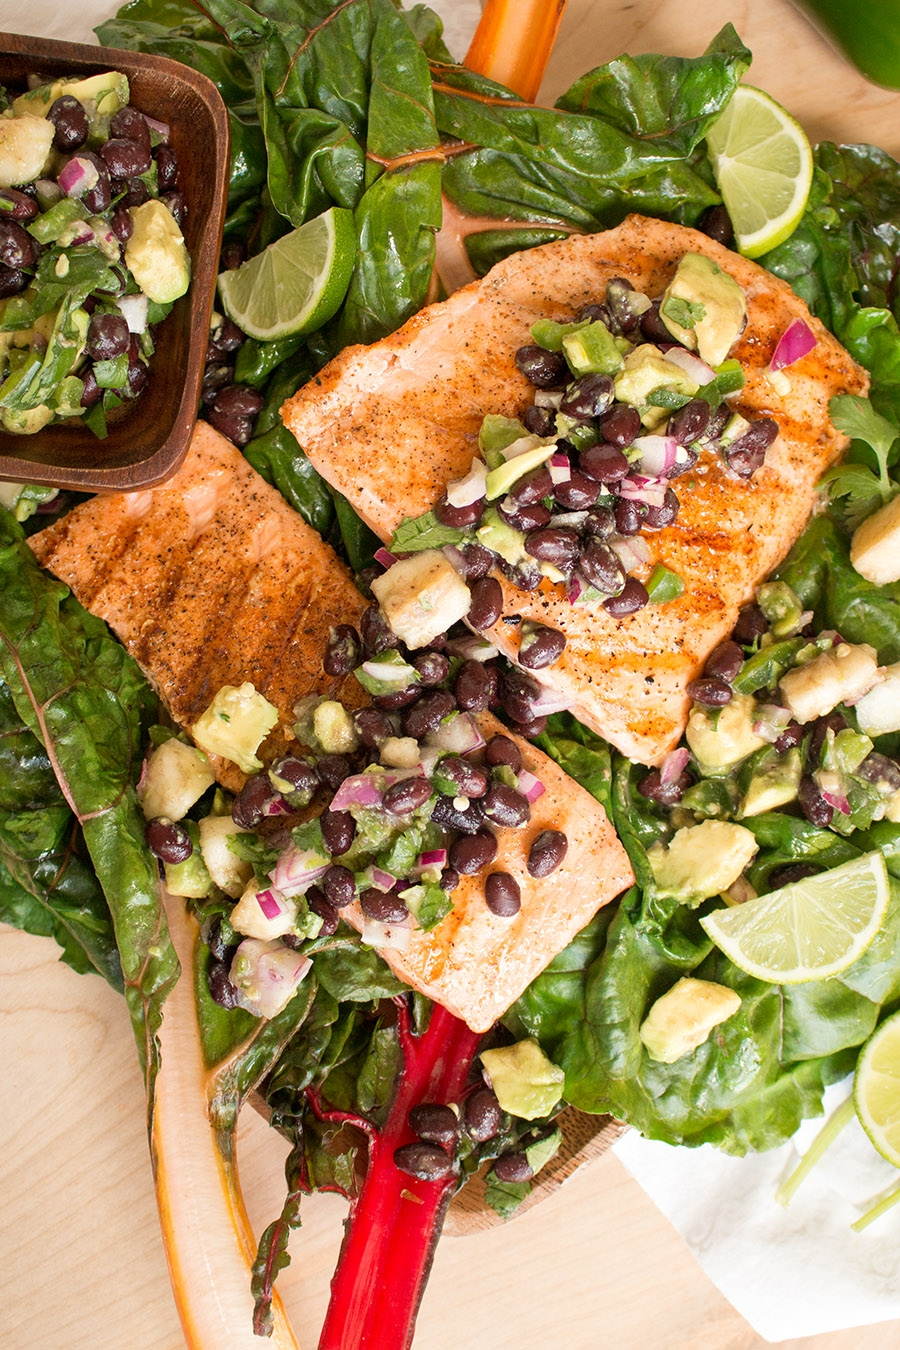 Grilled Salmon with Black Bean-Banana-Avocado Salsa and Swiss Chard